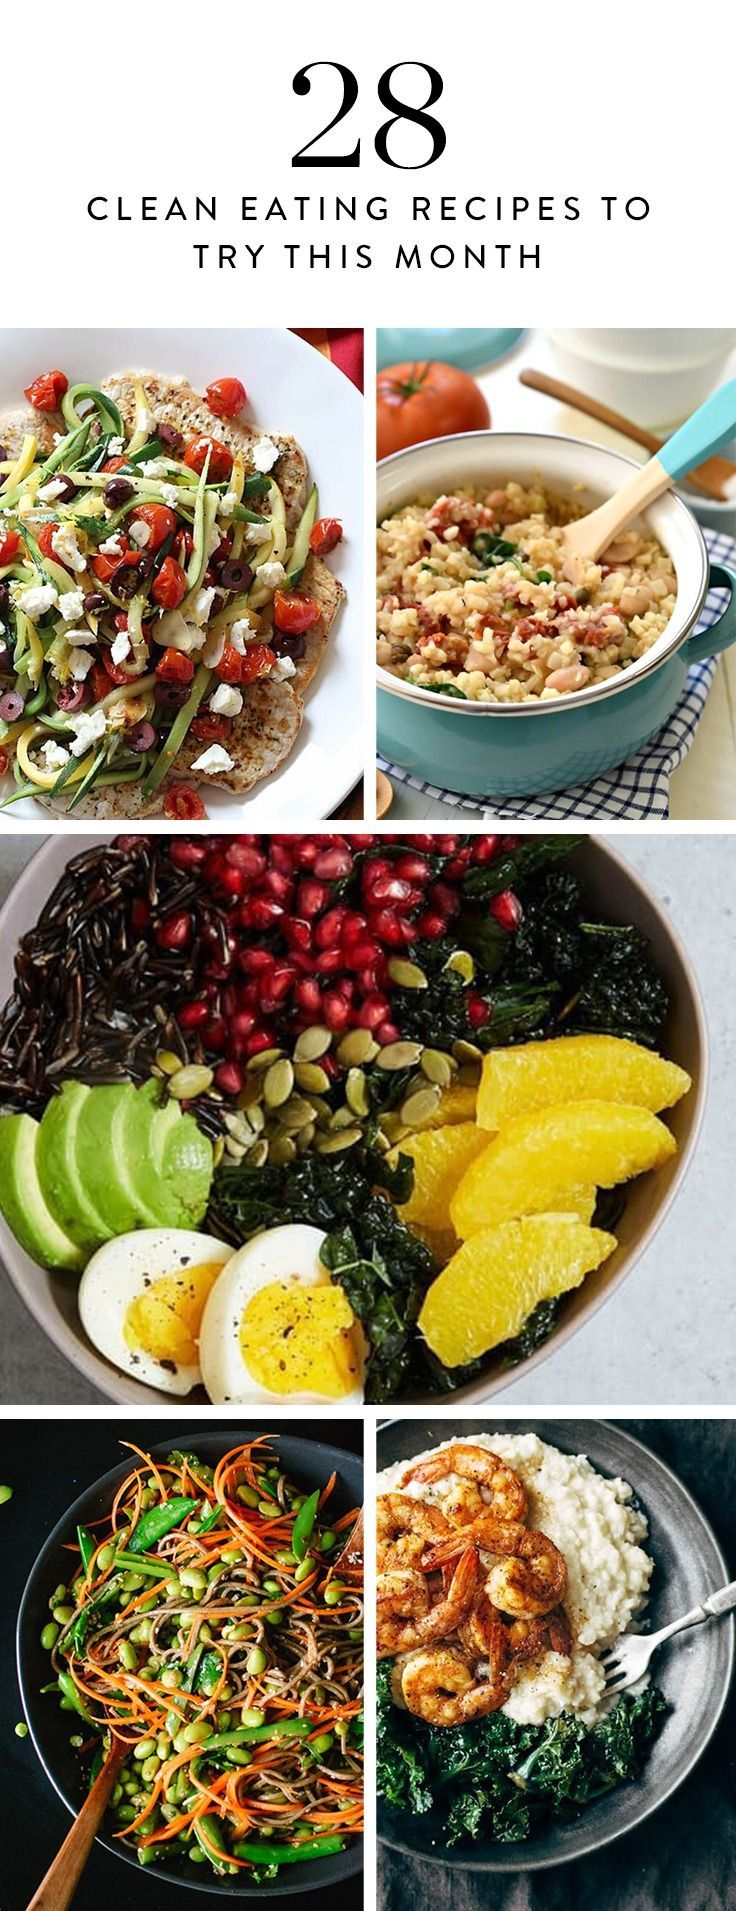 - 28 Clean Eating Dinners to Try Every Night in February  To prove how great (and diverse) a clean diet can be, we've got a month's worth of healthy meals that are so incredible, you might never go back to processed foods again.